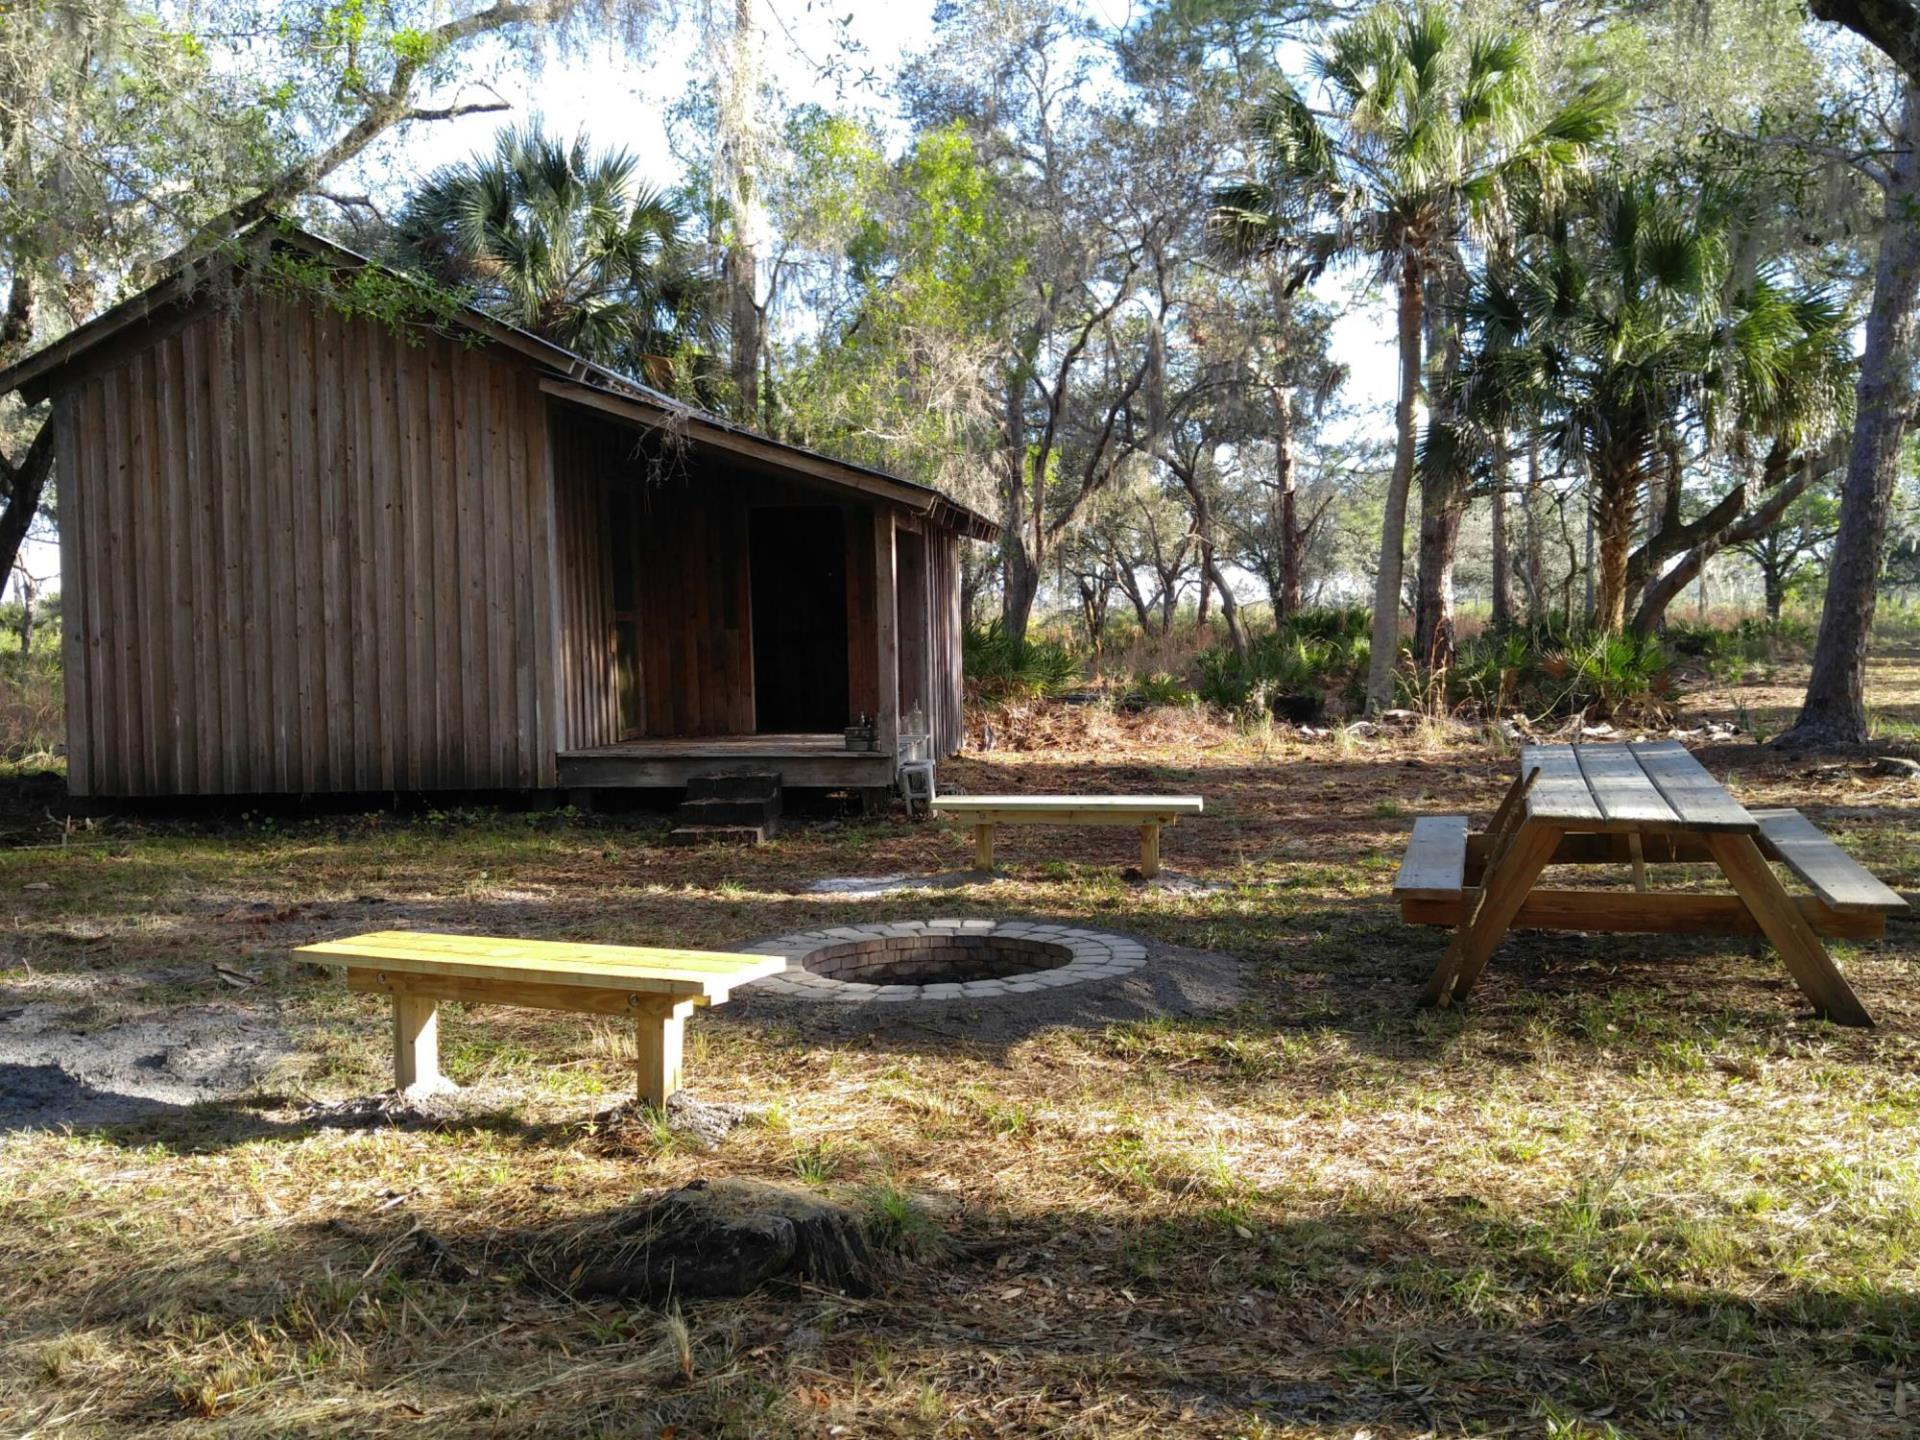 T. Marby Carlton, Jr. Memorial Reserve-Windy Sawgrass Campsite